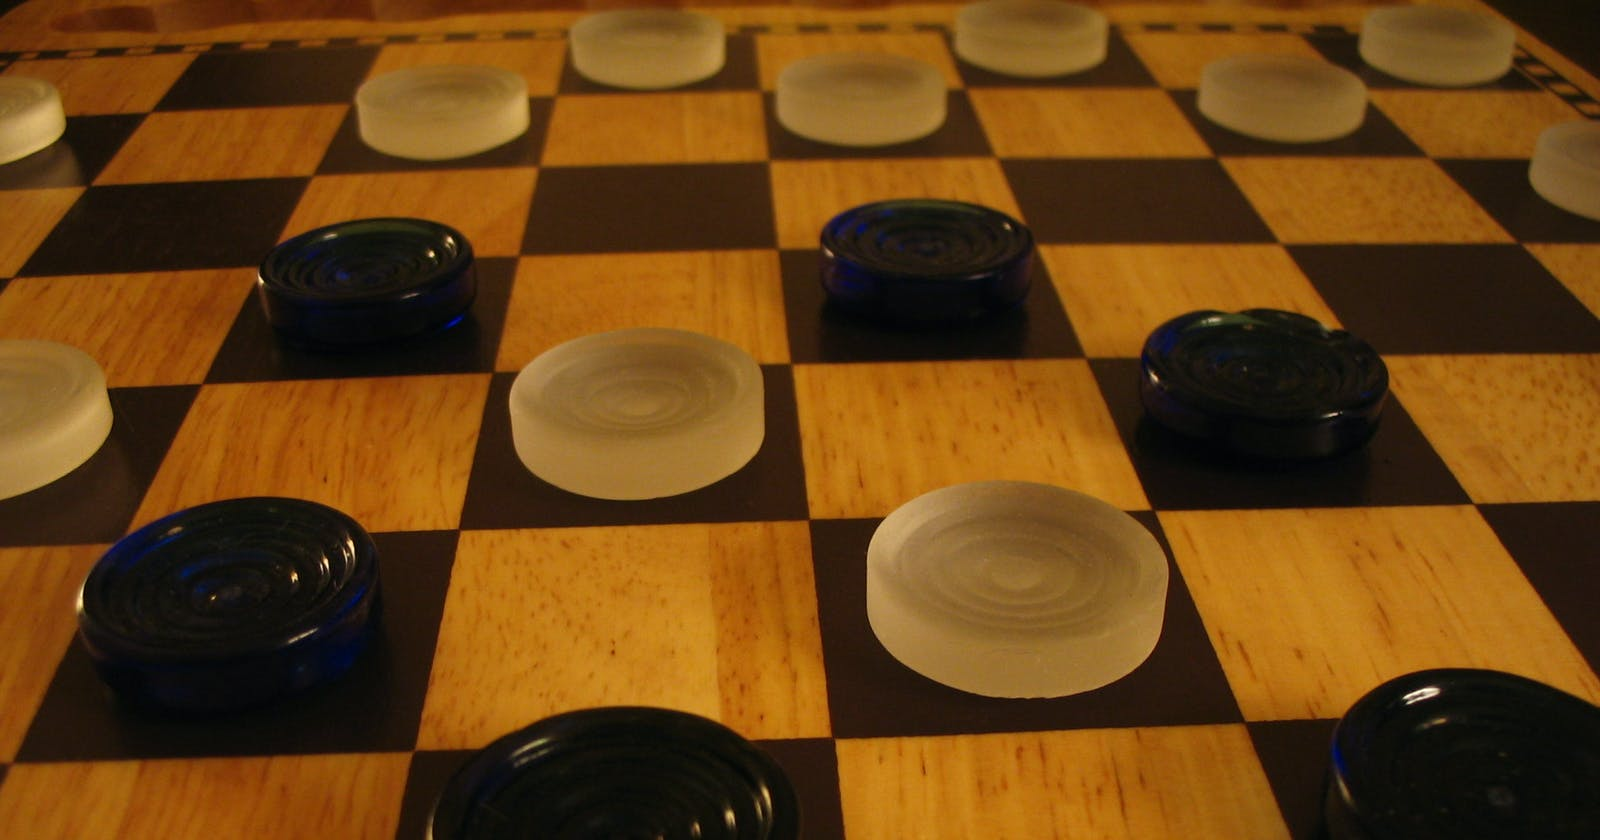 Let's Play Checkers with AI and Clojure